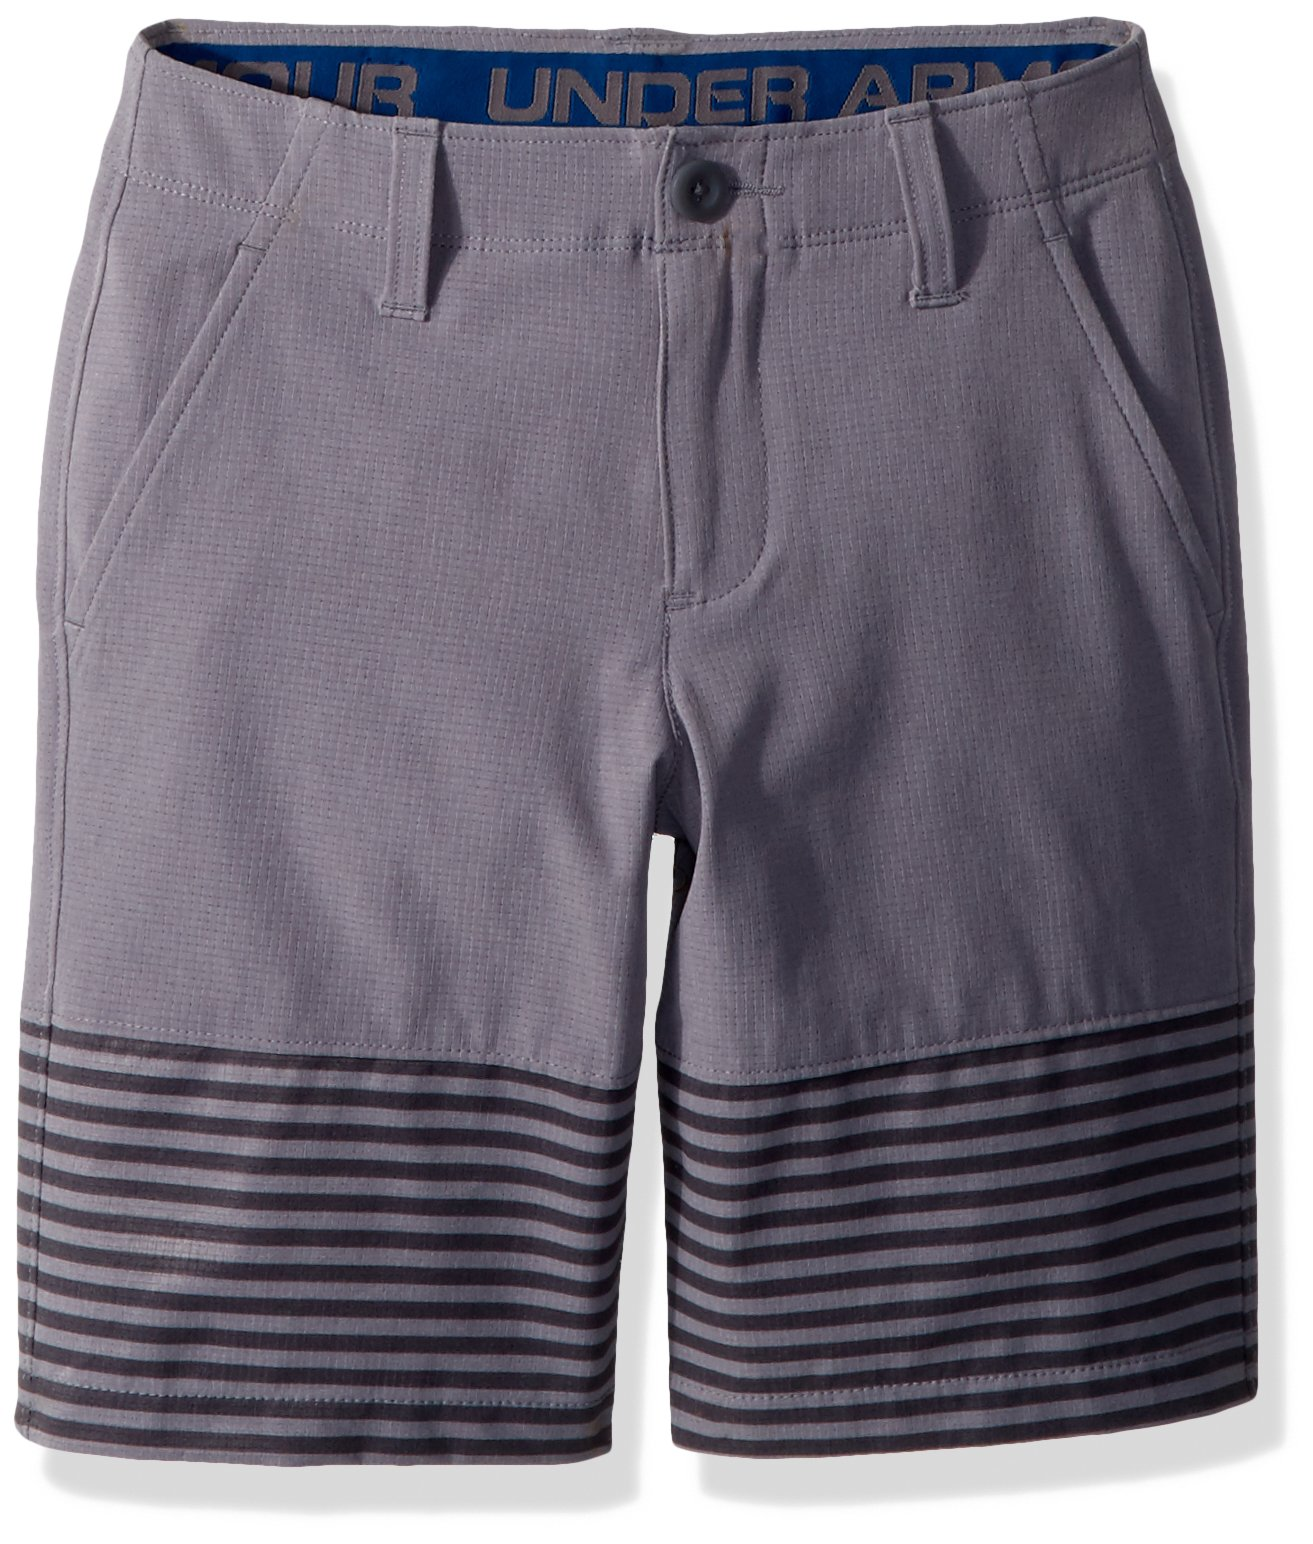 Under Armour Boys' Match Play Vented Shorts, Zinc Gray (513)/Zinc Gray, 6 by Under Armour